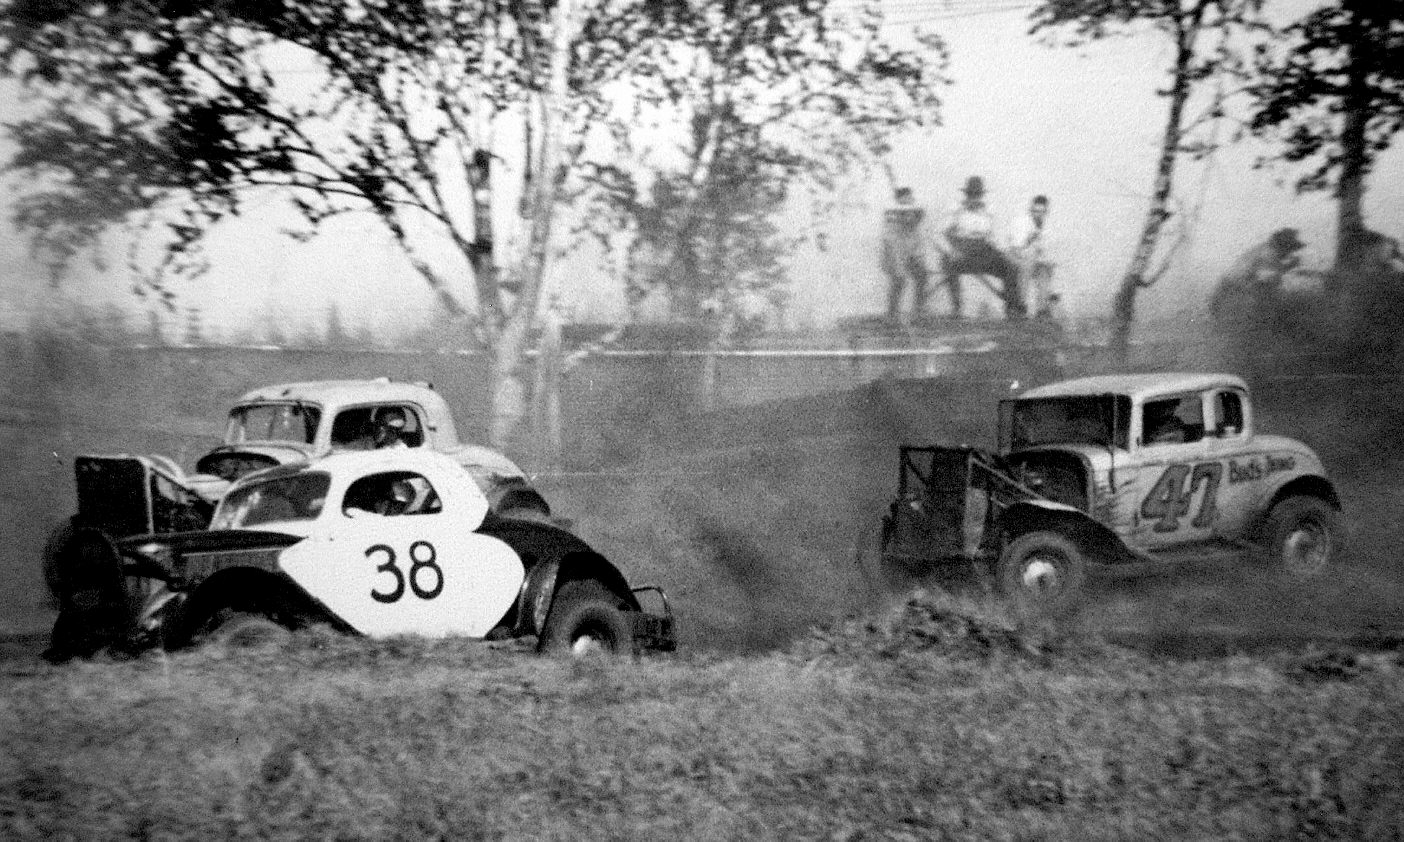 HOT RODS and JALOPIES: Lakehead Stock Car Club Tidbits from the Past!!